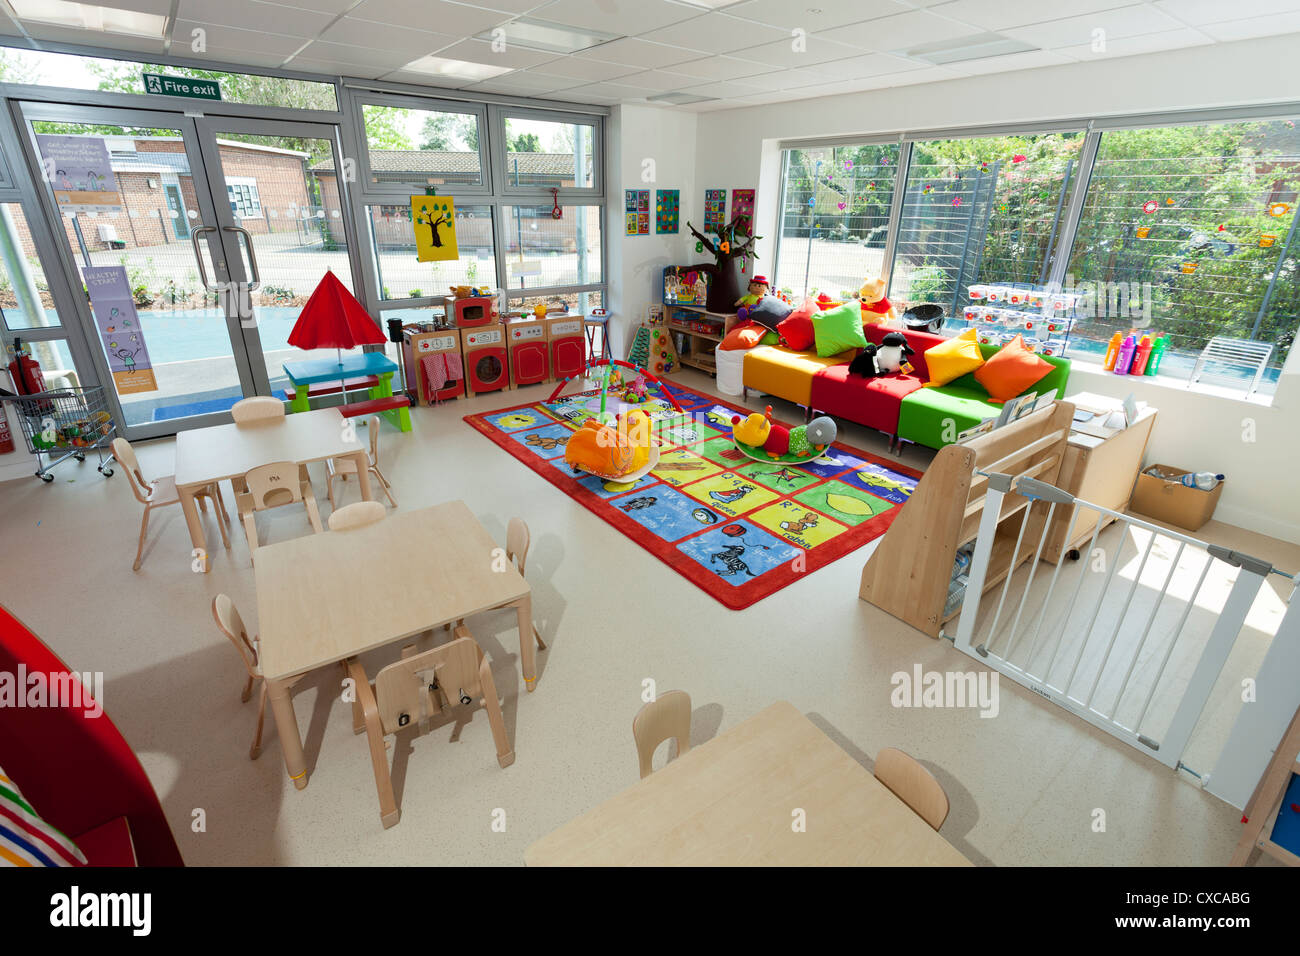 unoccupied infant classroom in childrens centre - Stock Image